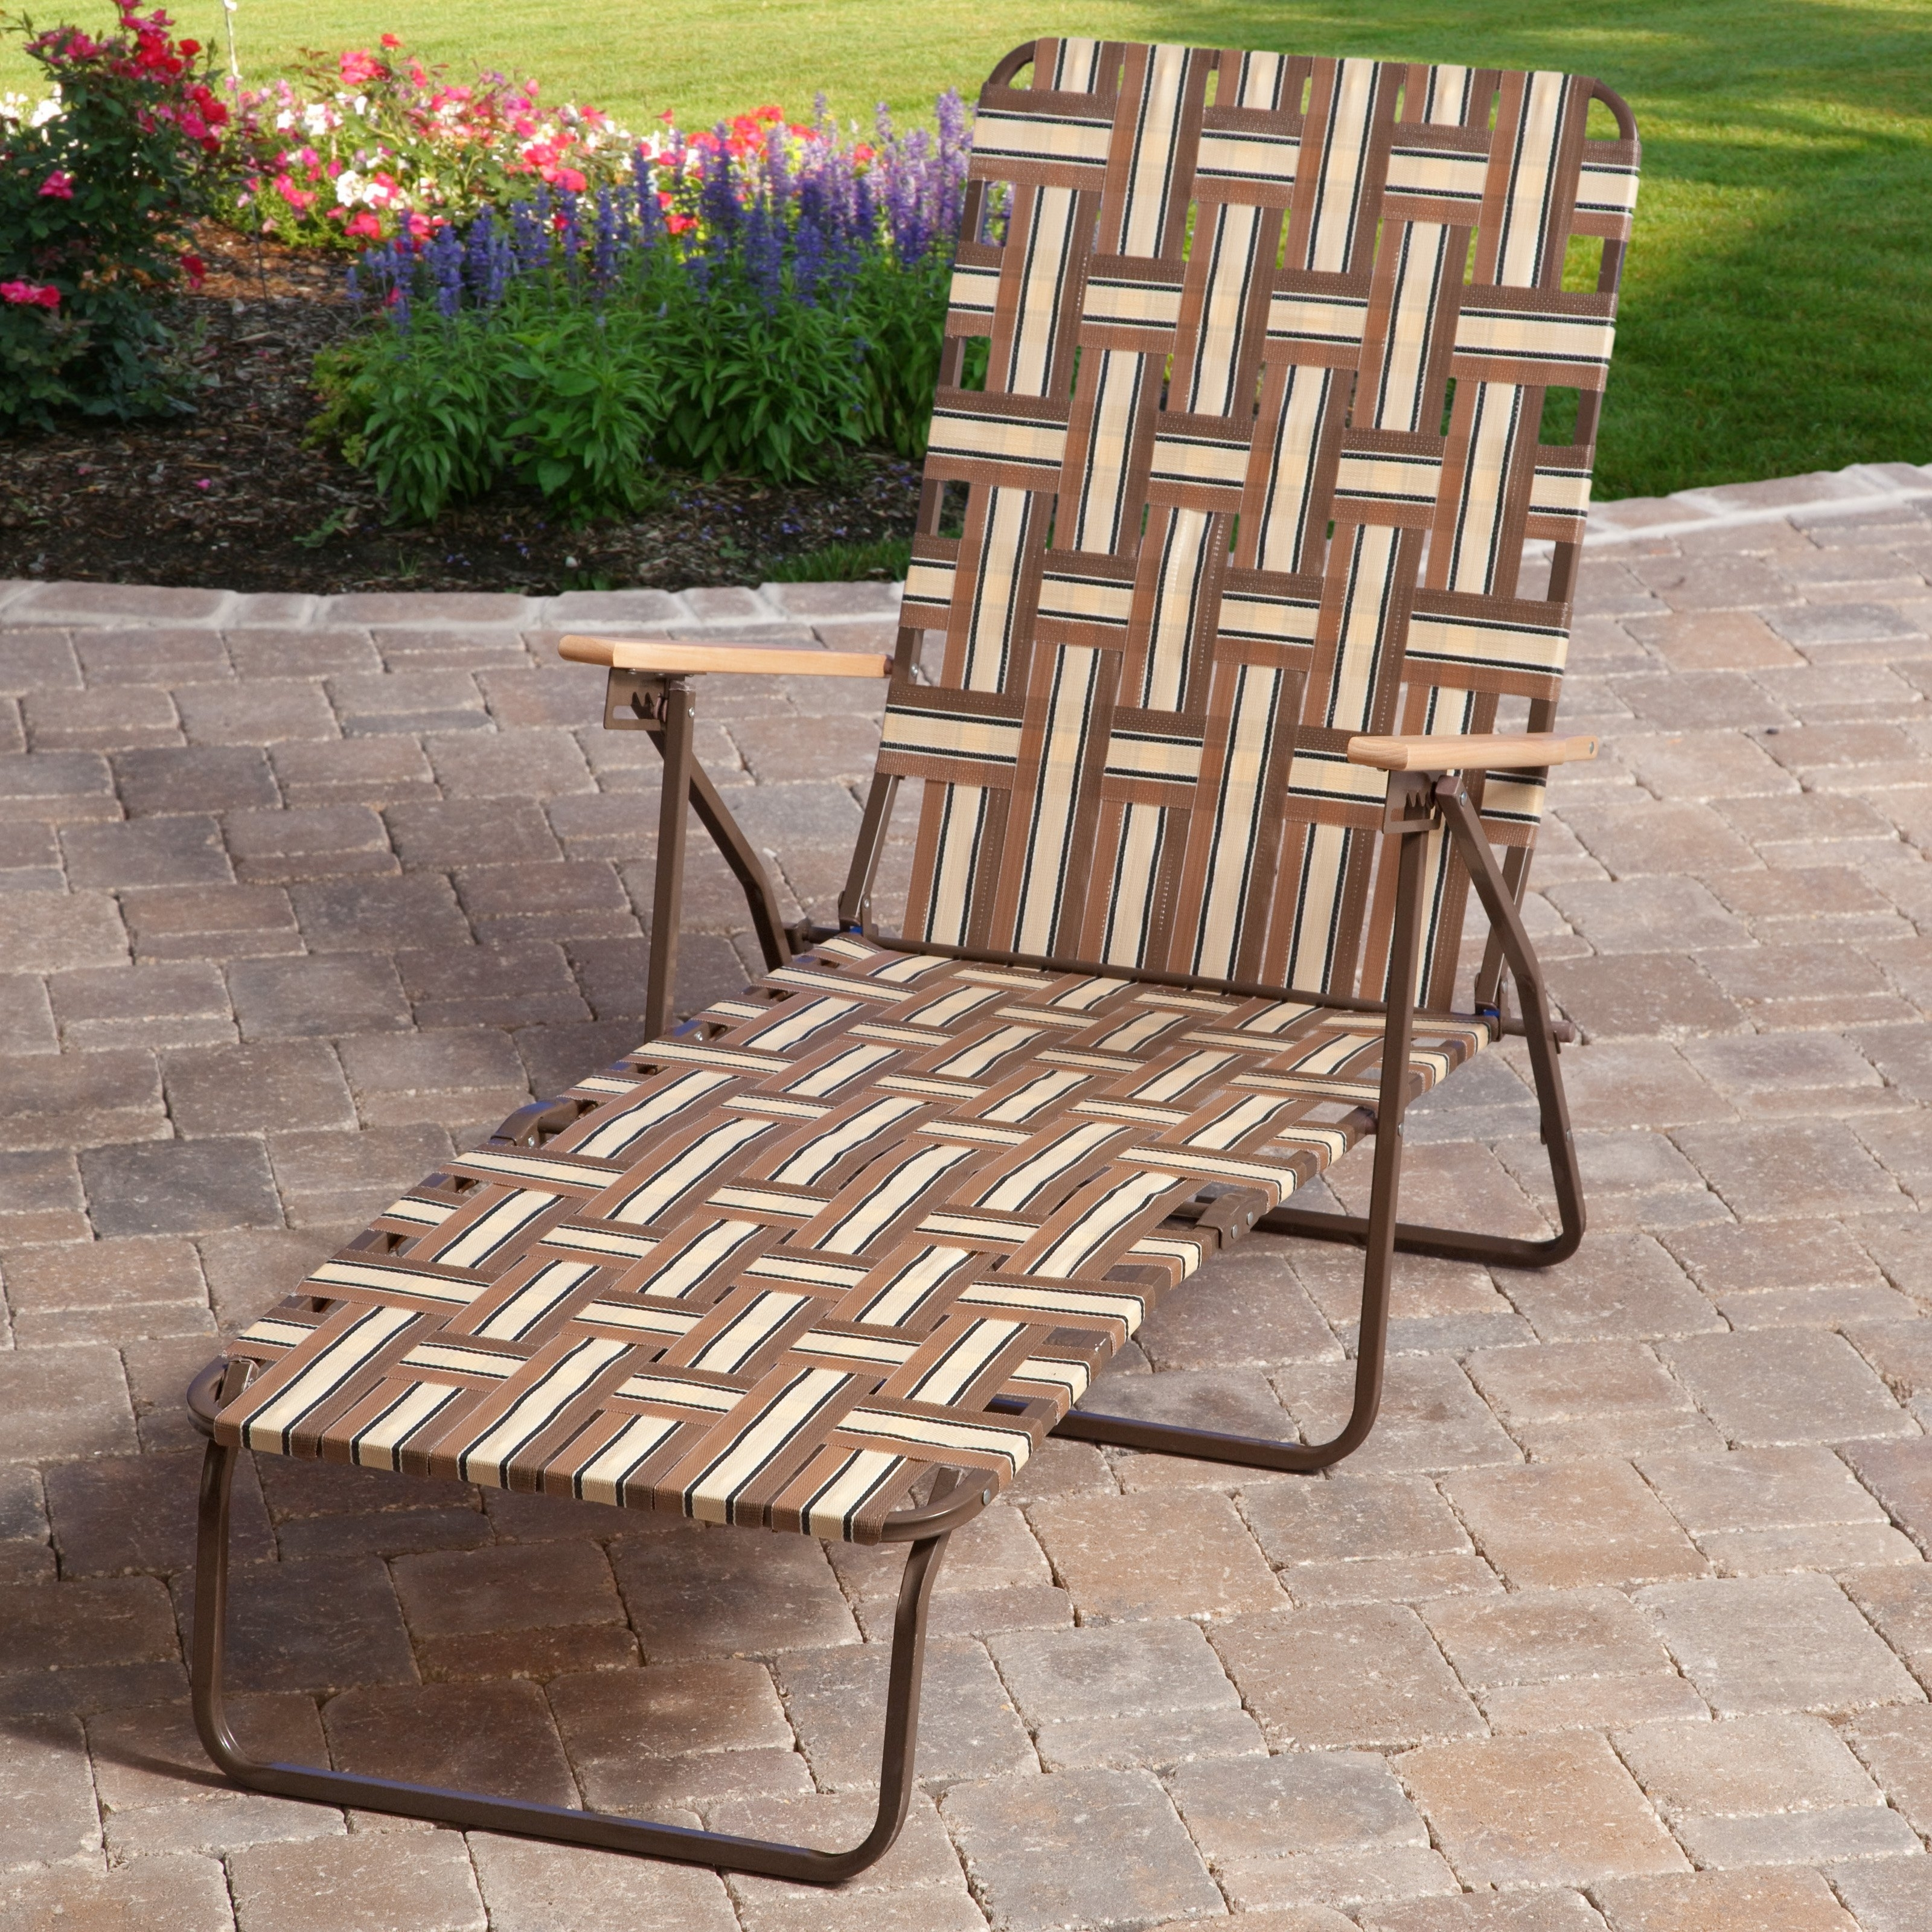 Folding Lawn Chair Lounger • Lounge Chairs Ideas Regarding Trendy Folding Chaise Lounge Lawn Chairs (View 7 of 15)